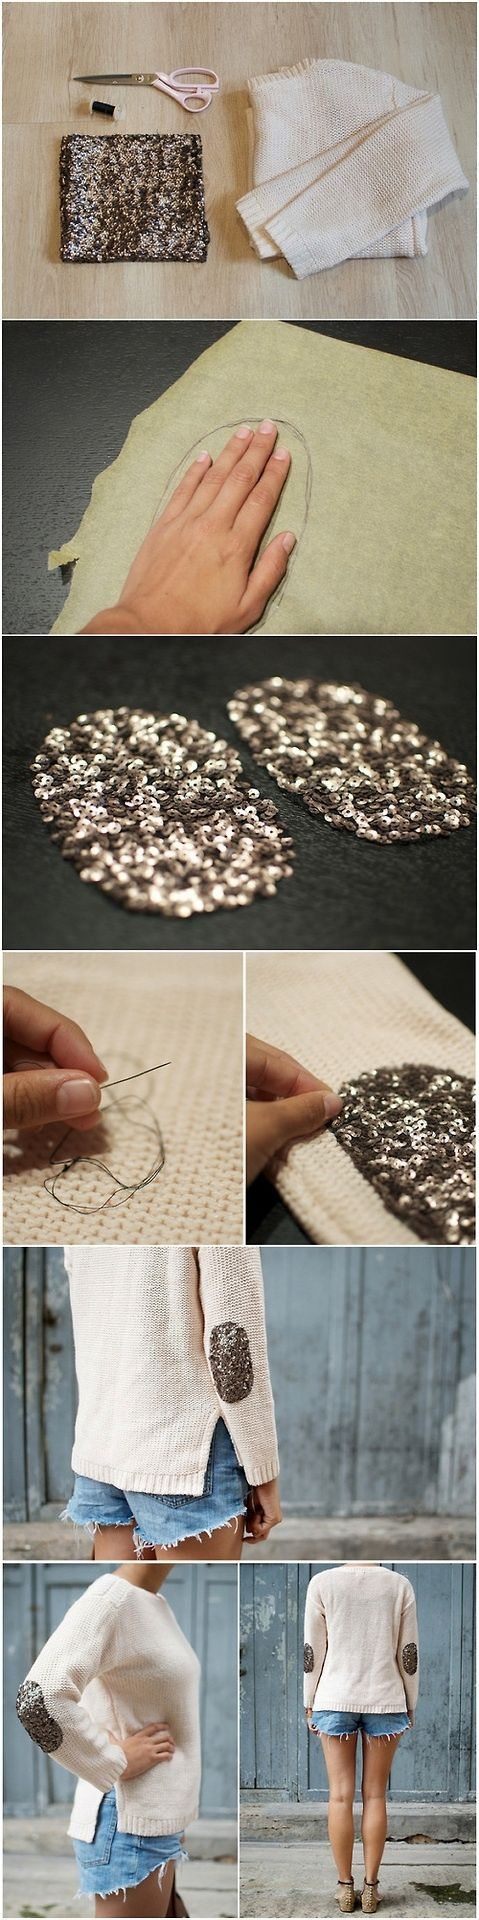 Sweater Decor! Ever want a little glam added to your plain sweater? Here is the trick!